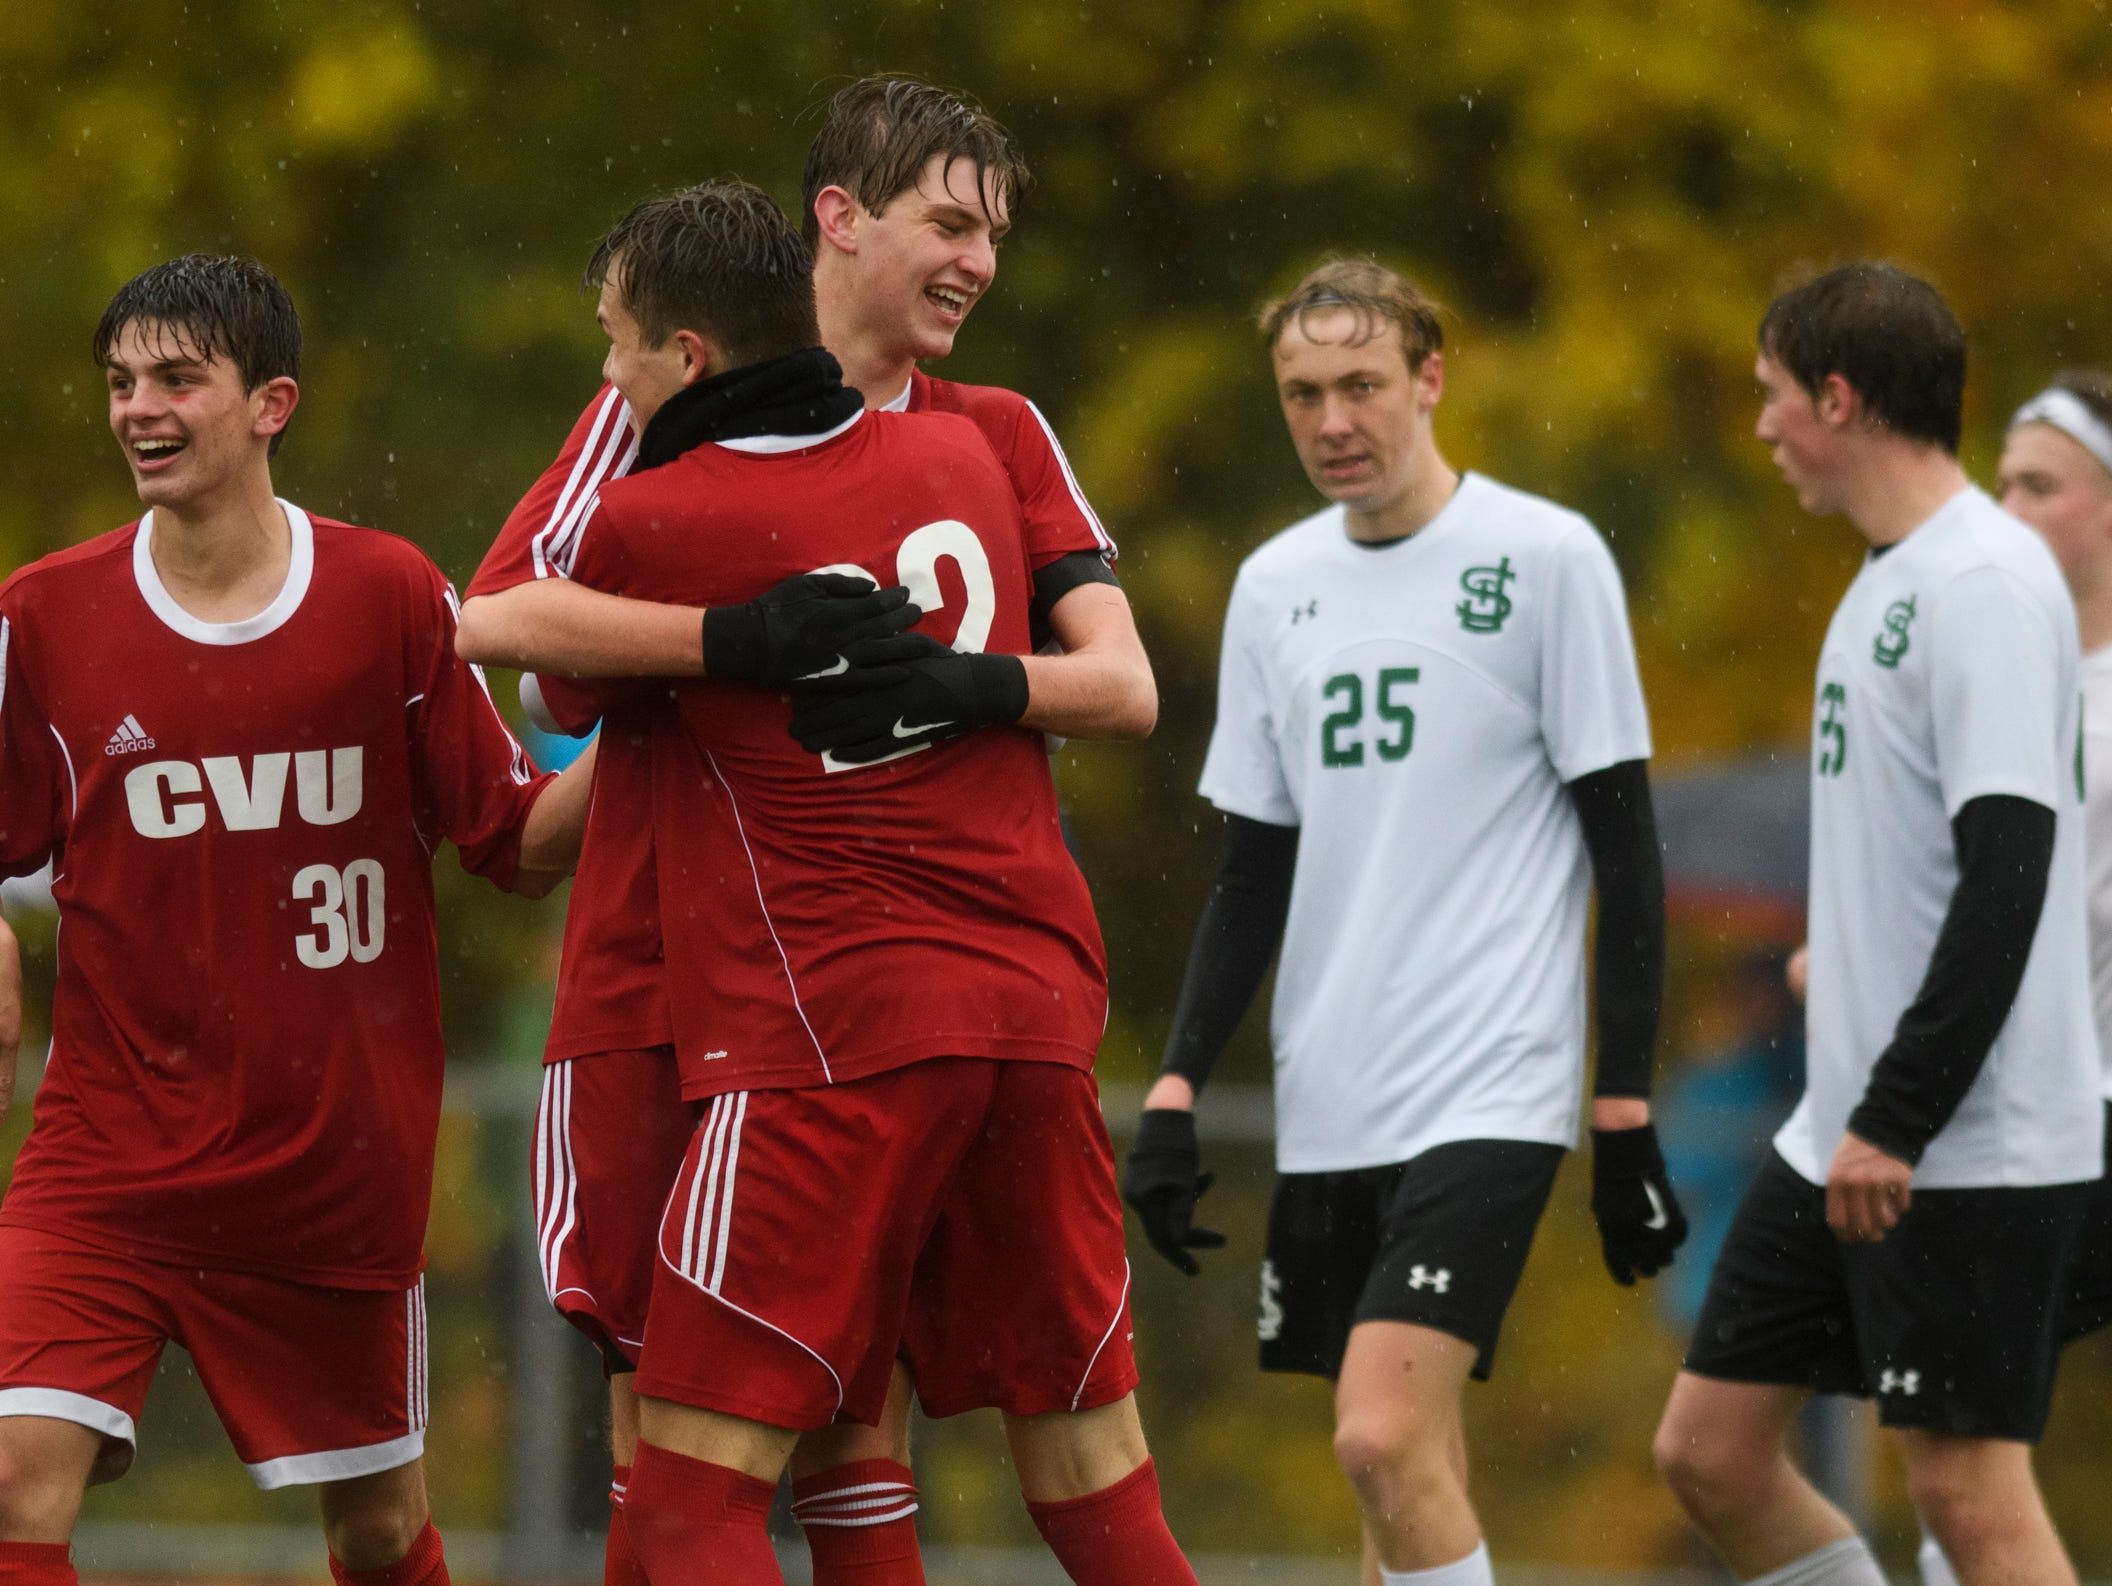 CVU celebrates a goal during the Division I boys soccer championship game between the St. Johnsbury Hilltoppers and the Champlain Valley Union Redhawks at Buck Hard Field on Saturday morning November 3, 2018 in Burlington.